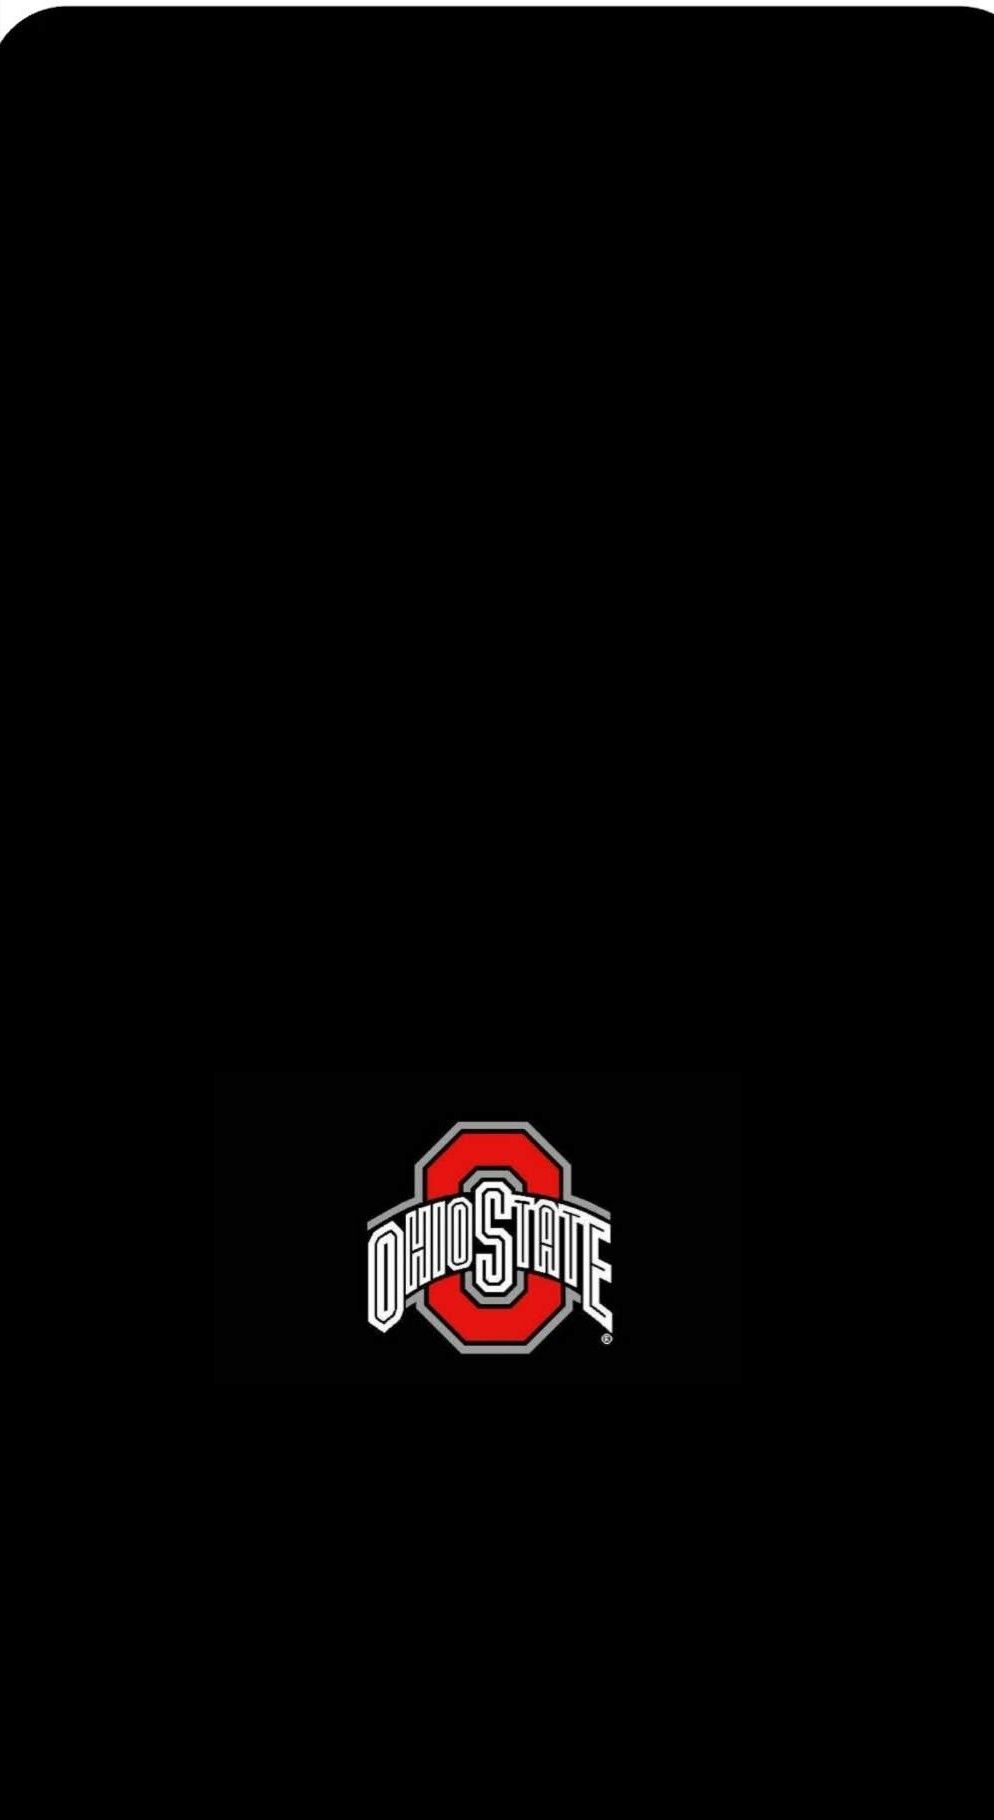 Pin By Daryl Bird On Ohio State Wallpaper Ohio State Wallpaper Ohio State Buckeyes Football Ohio State